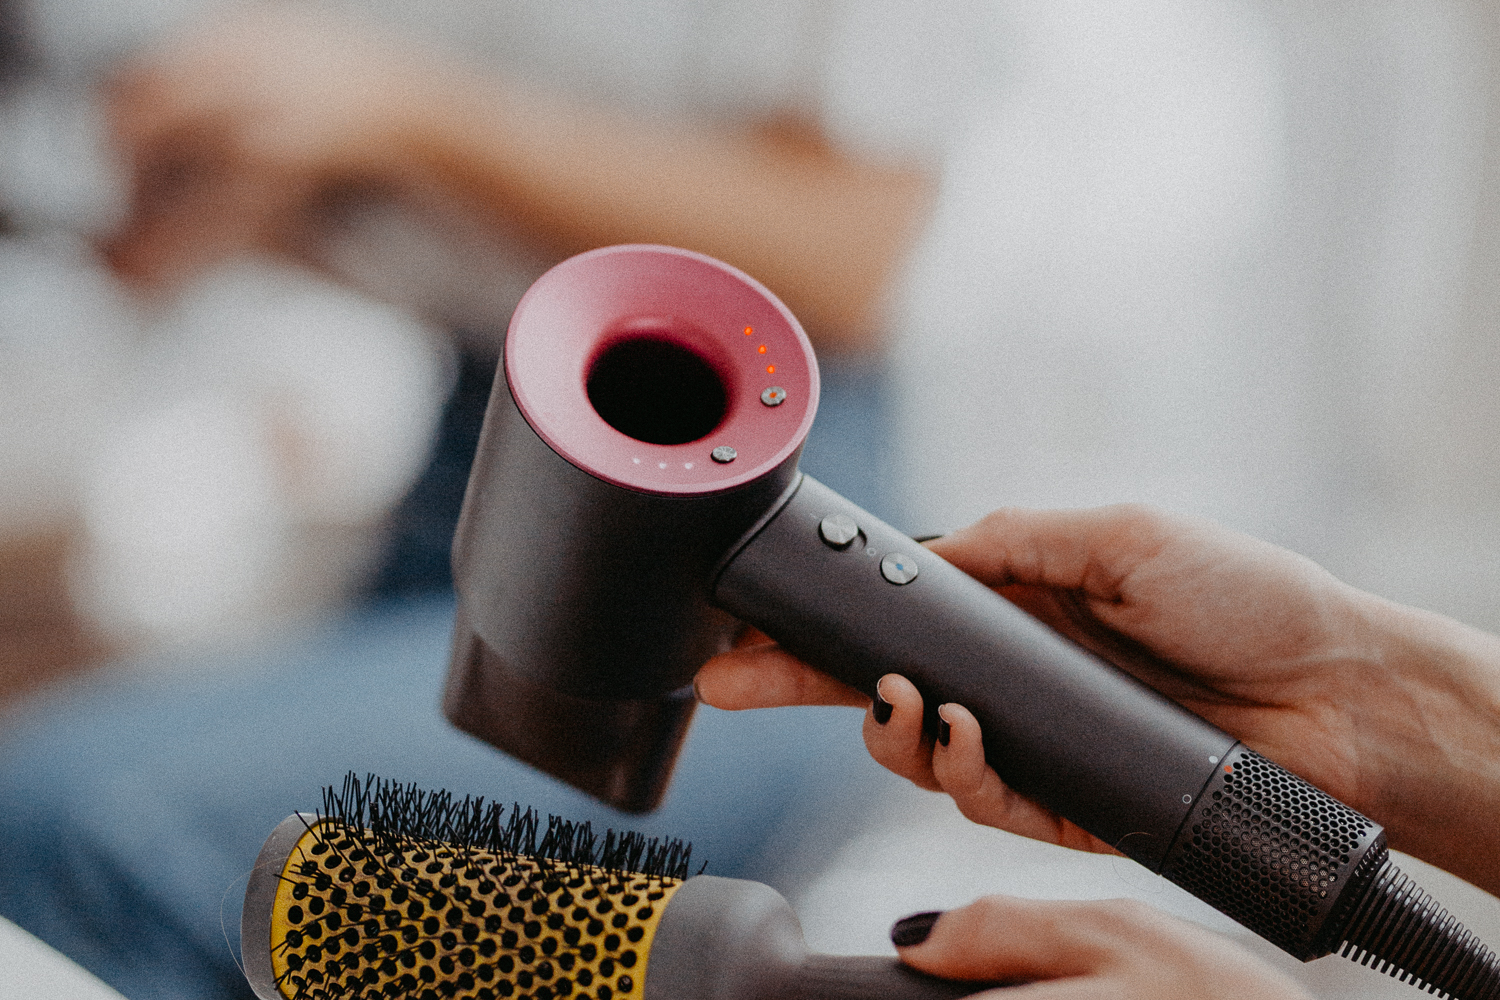 10-Minute Salon Blowout At Home, Dyson Supersonic Hair Dryer Review | Bikinis & Passports